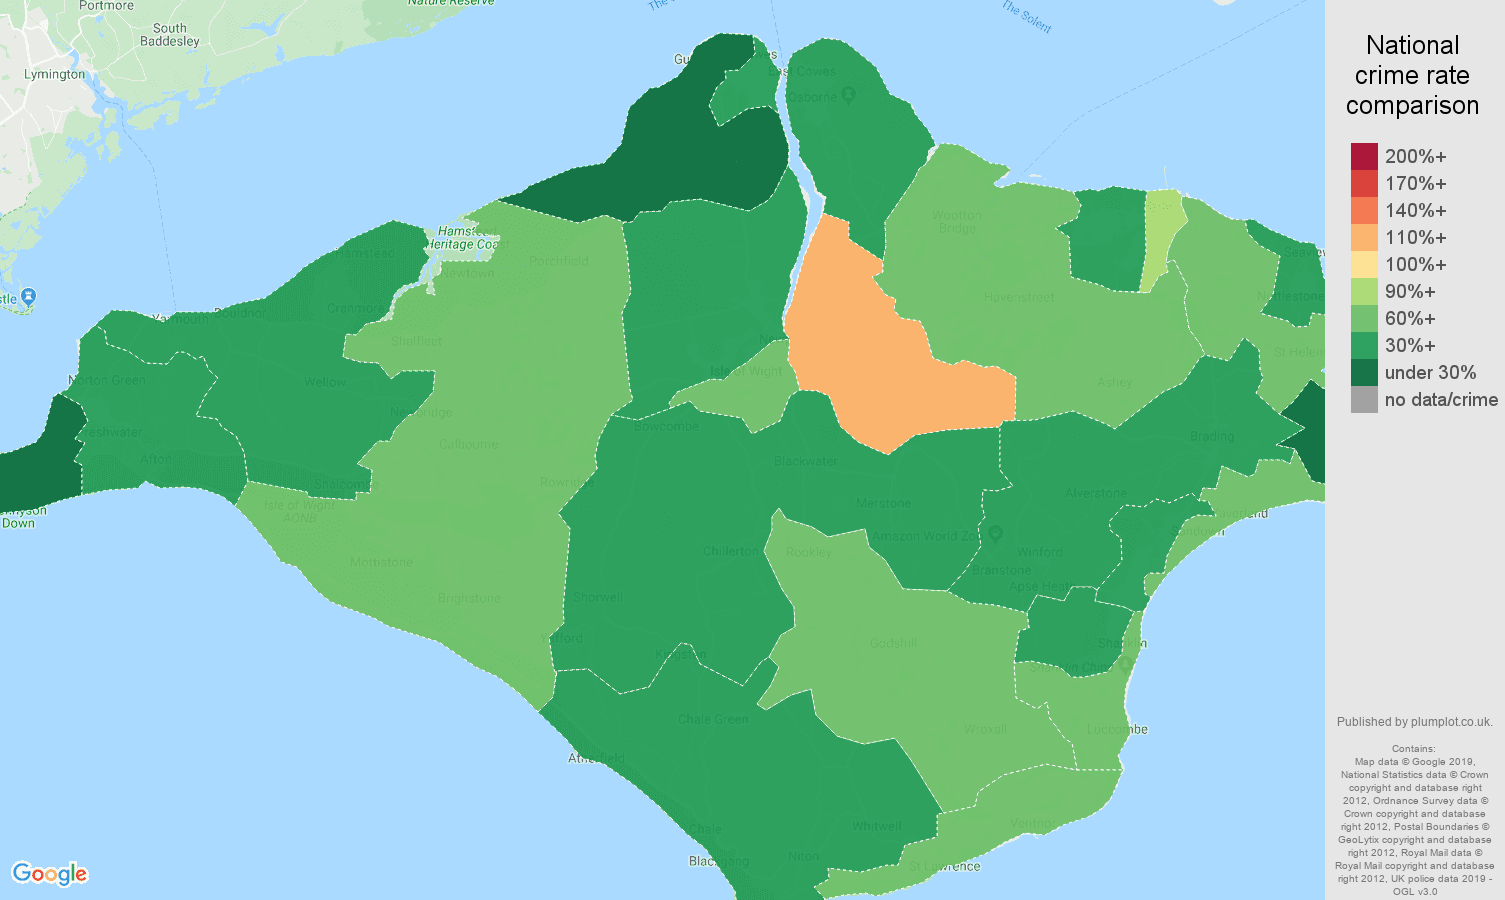 Isle of Wight other theft crime rate comparison map